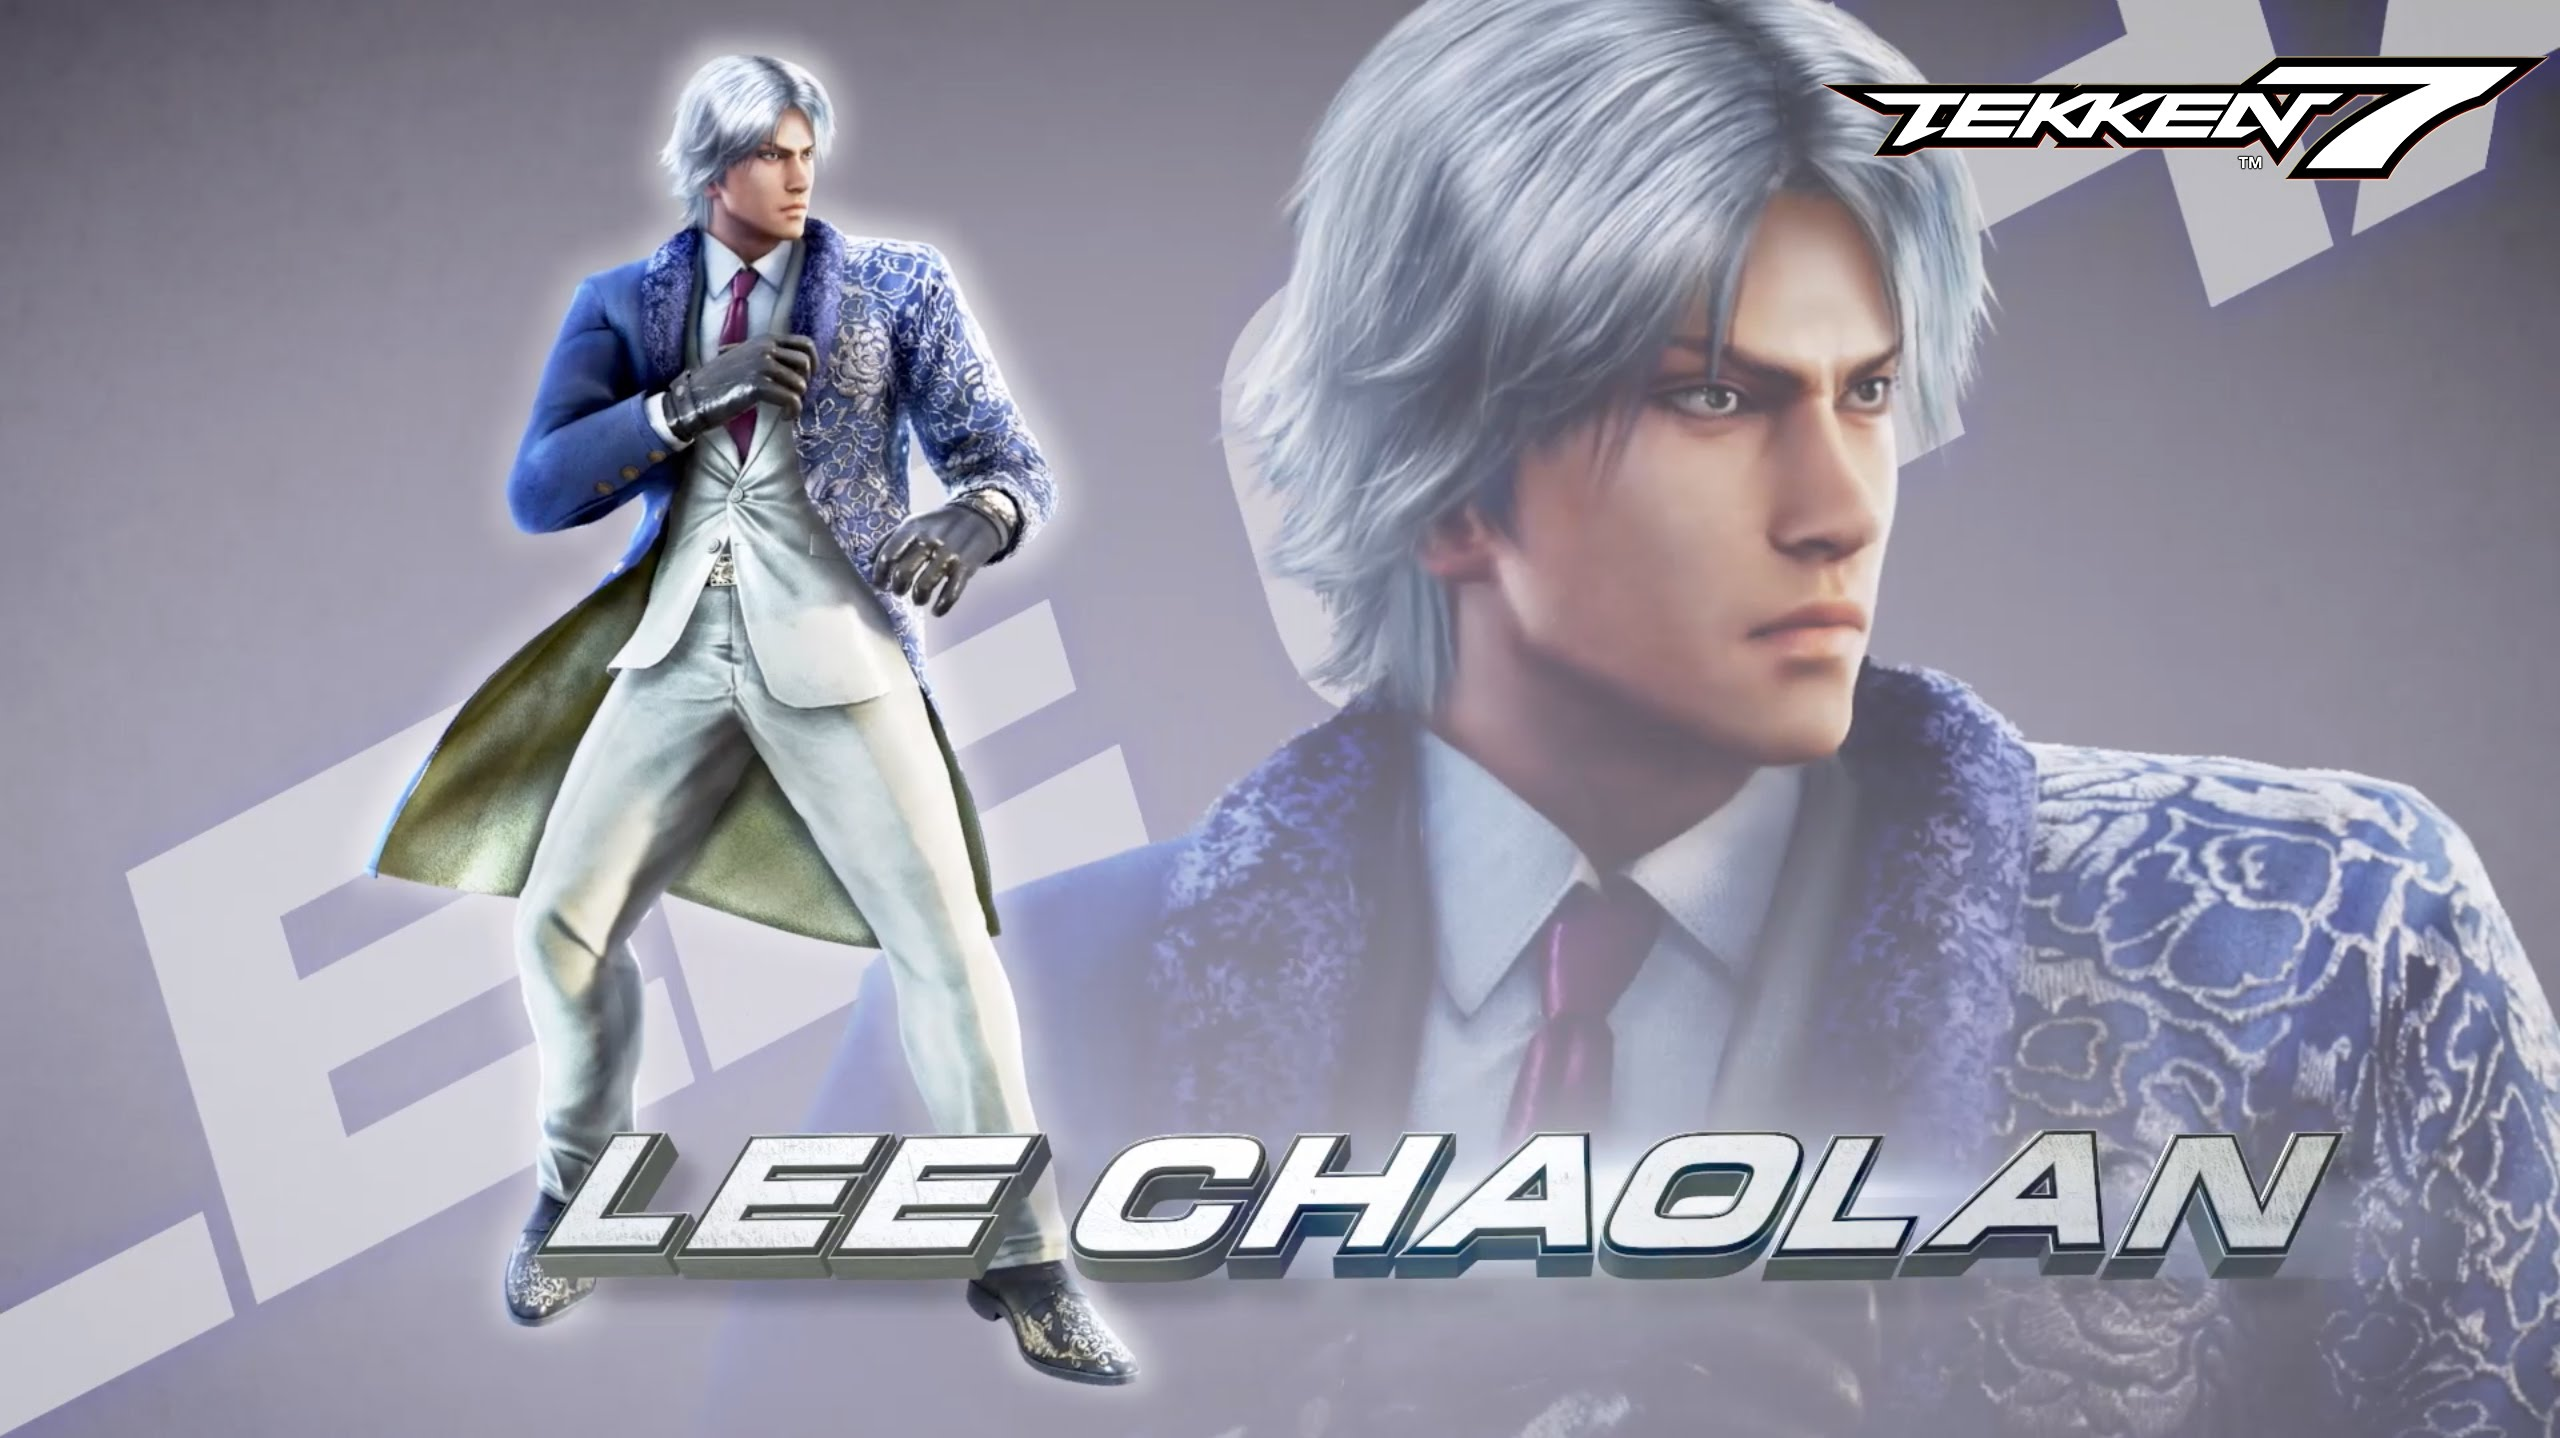 Tekken 7 – Lee Chaolan/Violet Reveal Trailer